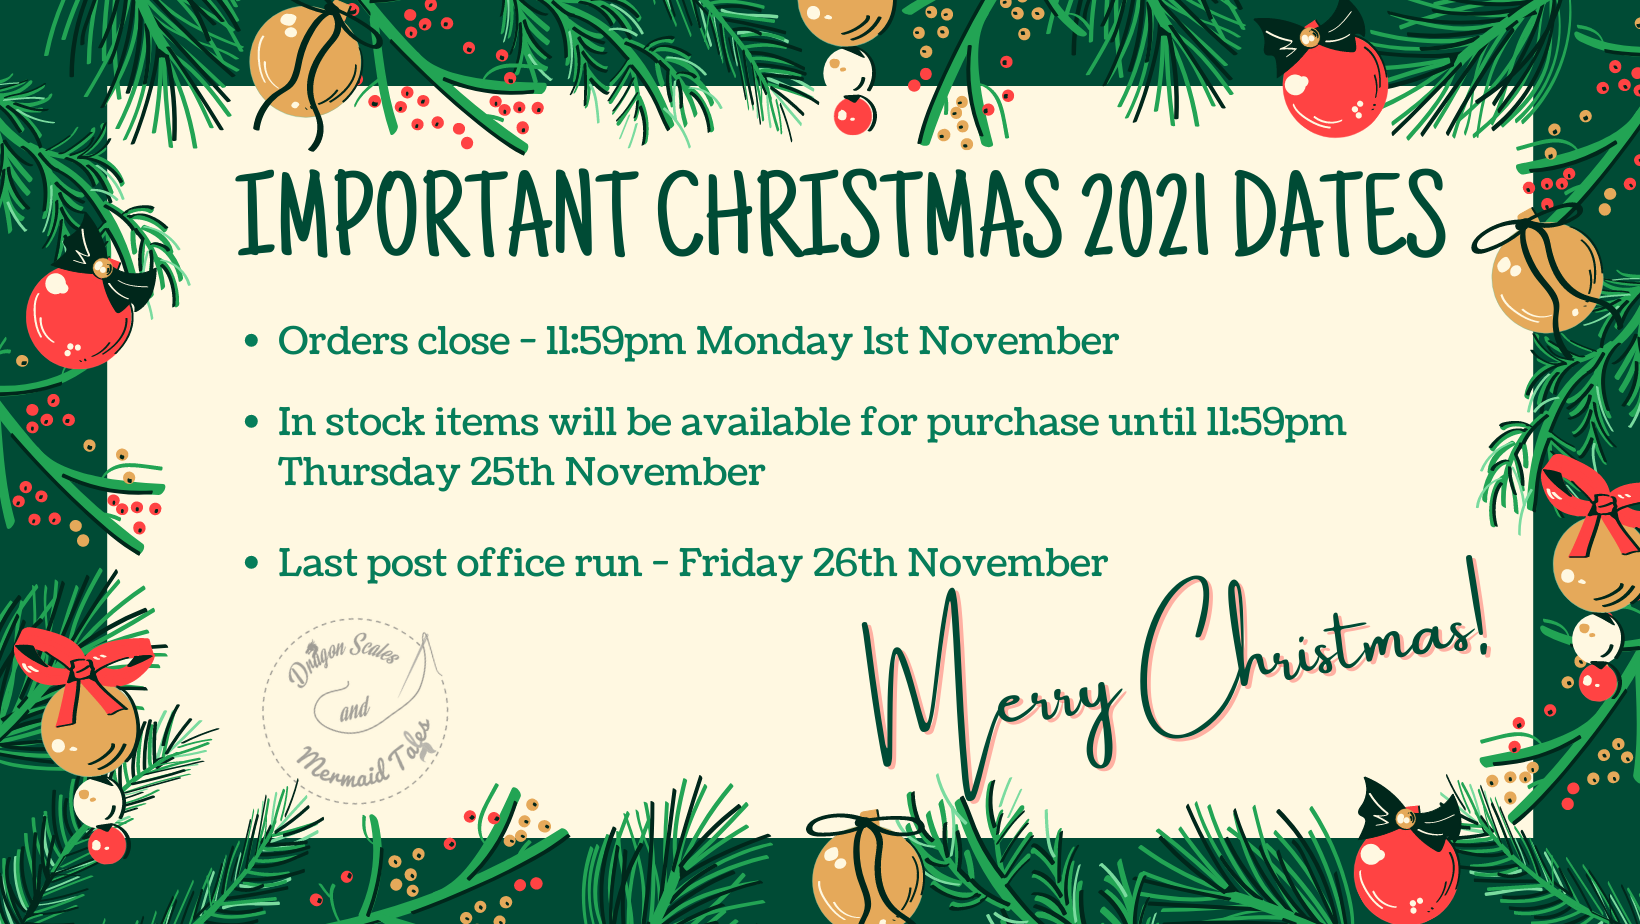 Important Christmas dates 2021